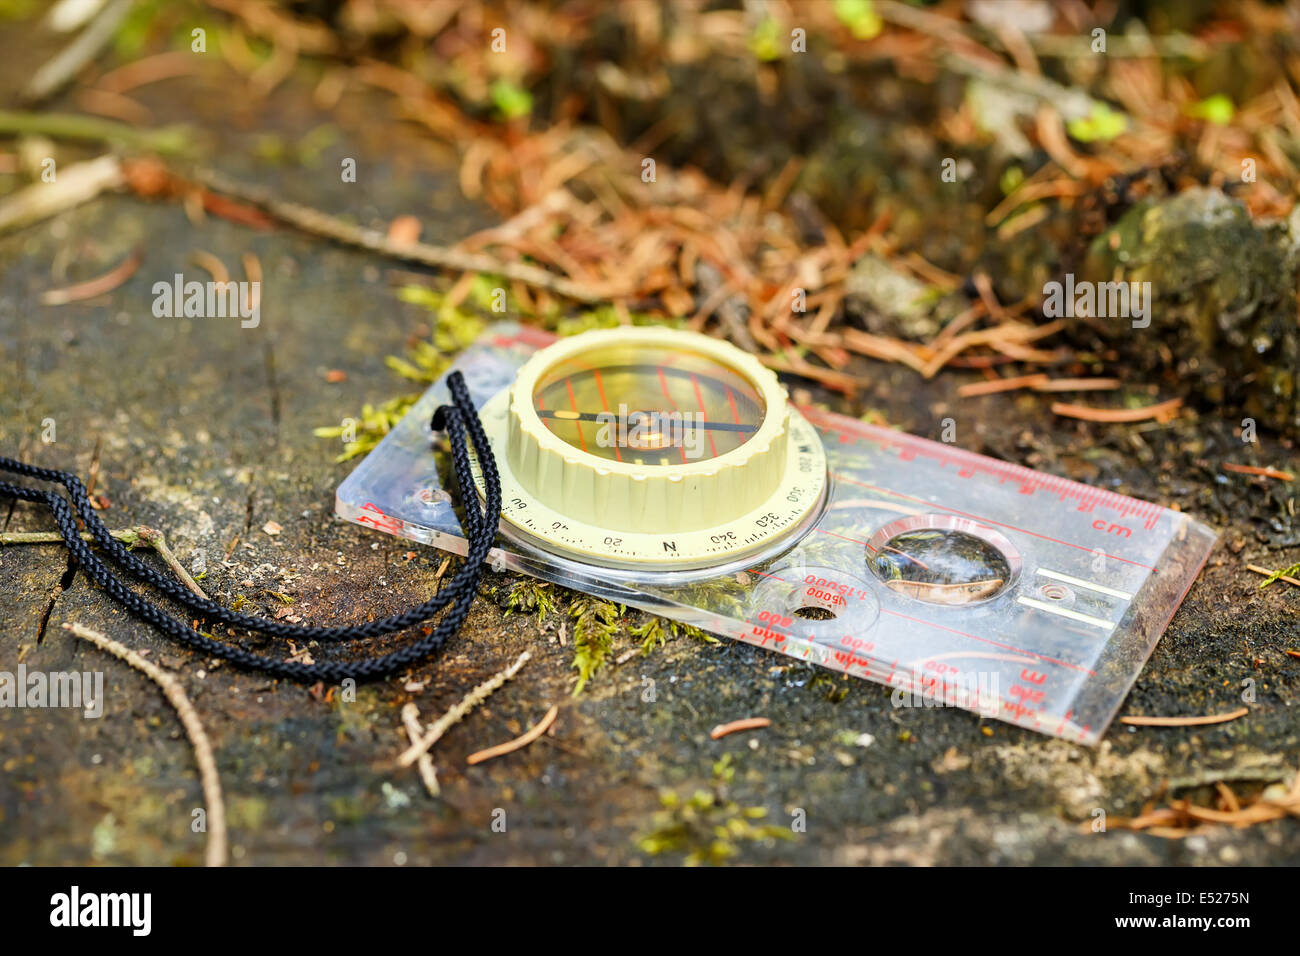 old touristic handheld compass on groung outdoor - Stock Image